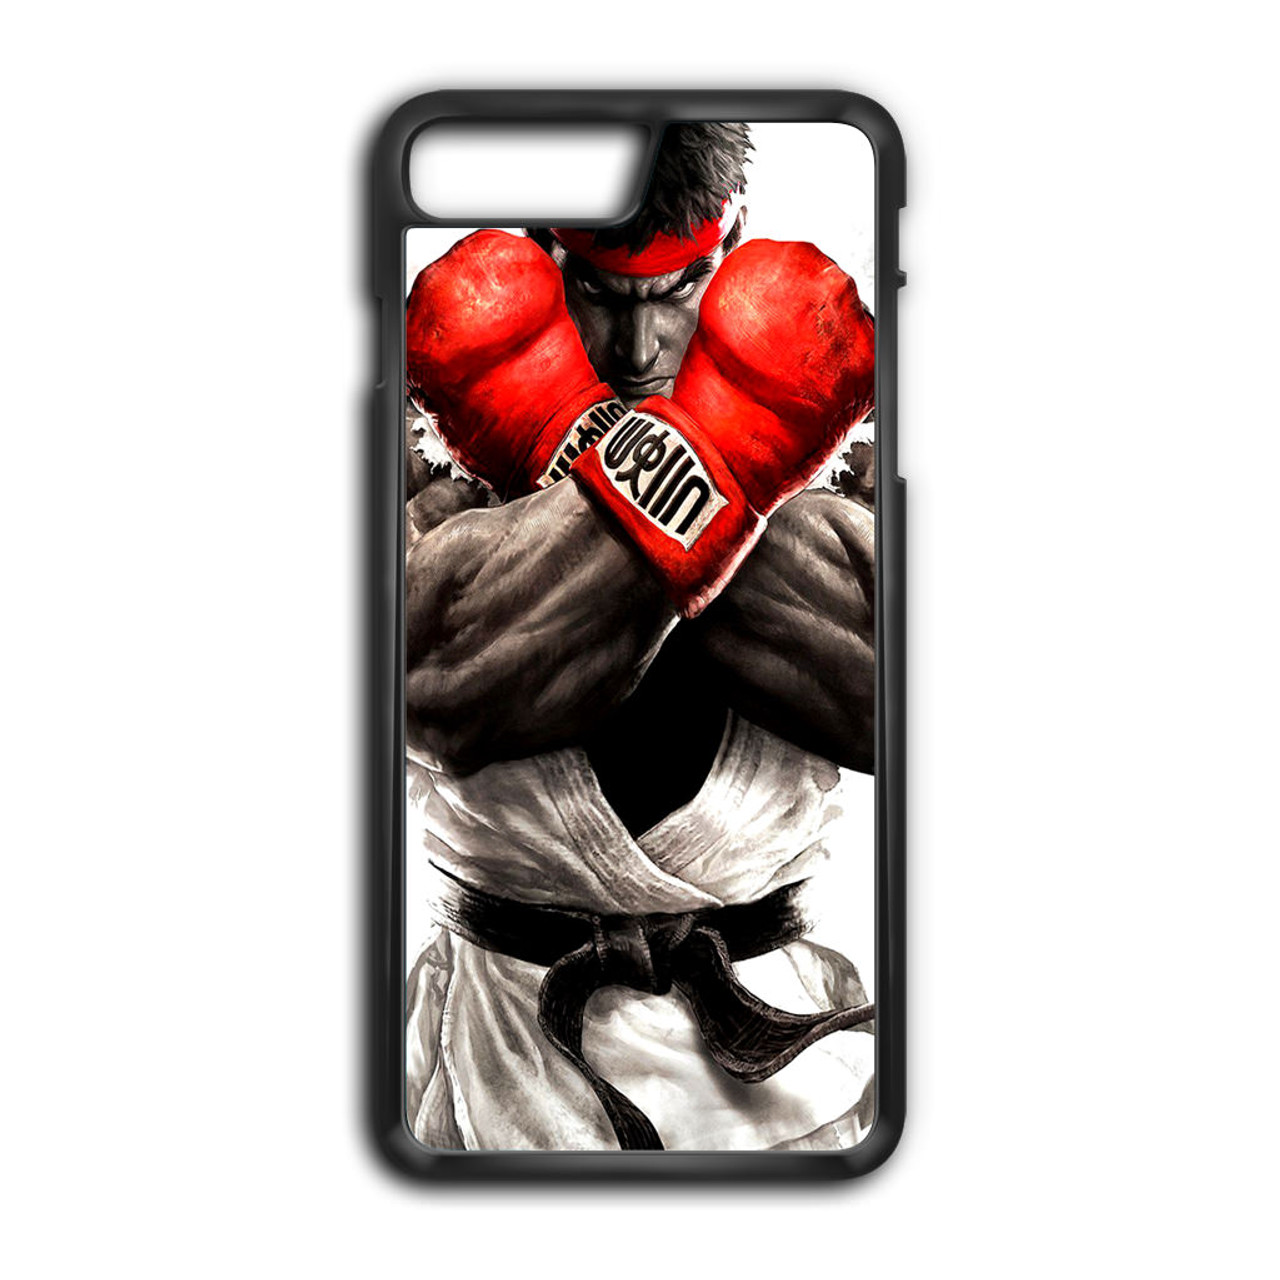 boxing phone case iphone 8